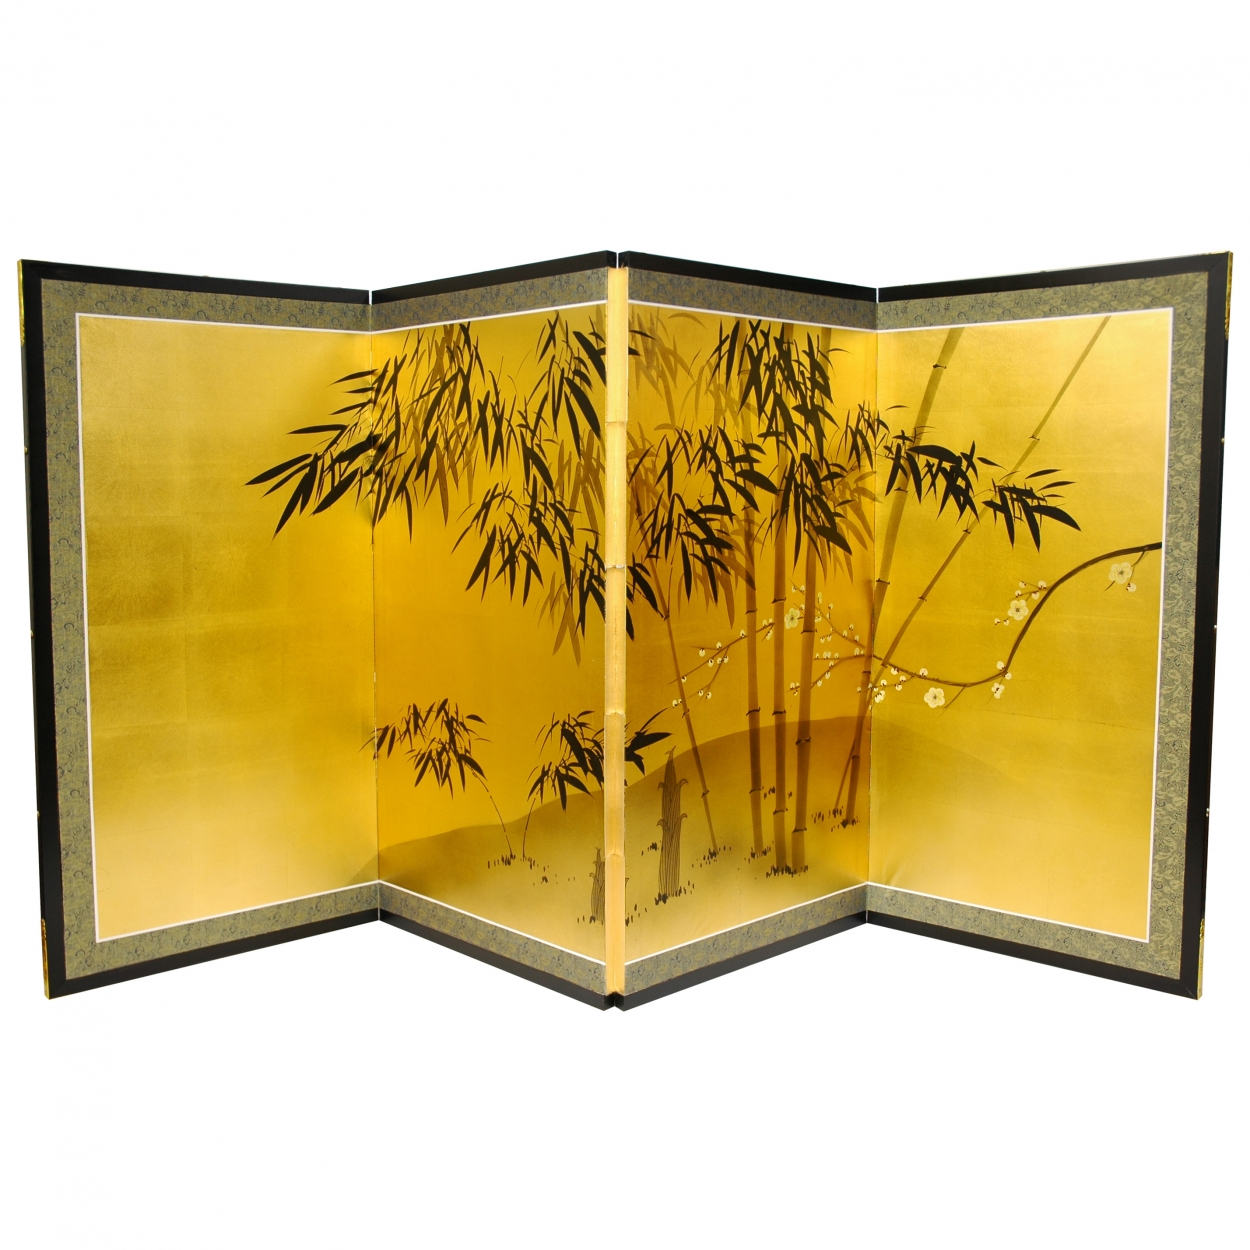 Buy Gold Leaf Bamboo Wall Hanging Online (SILK-BAMBOO ...